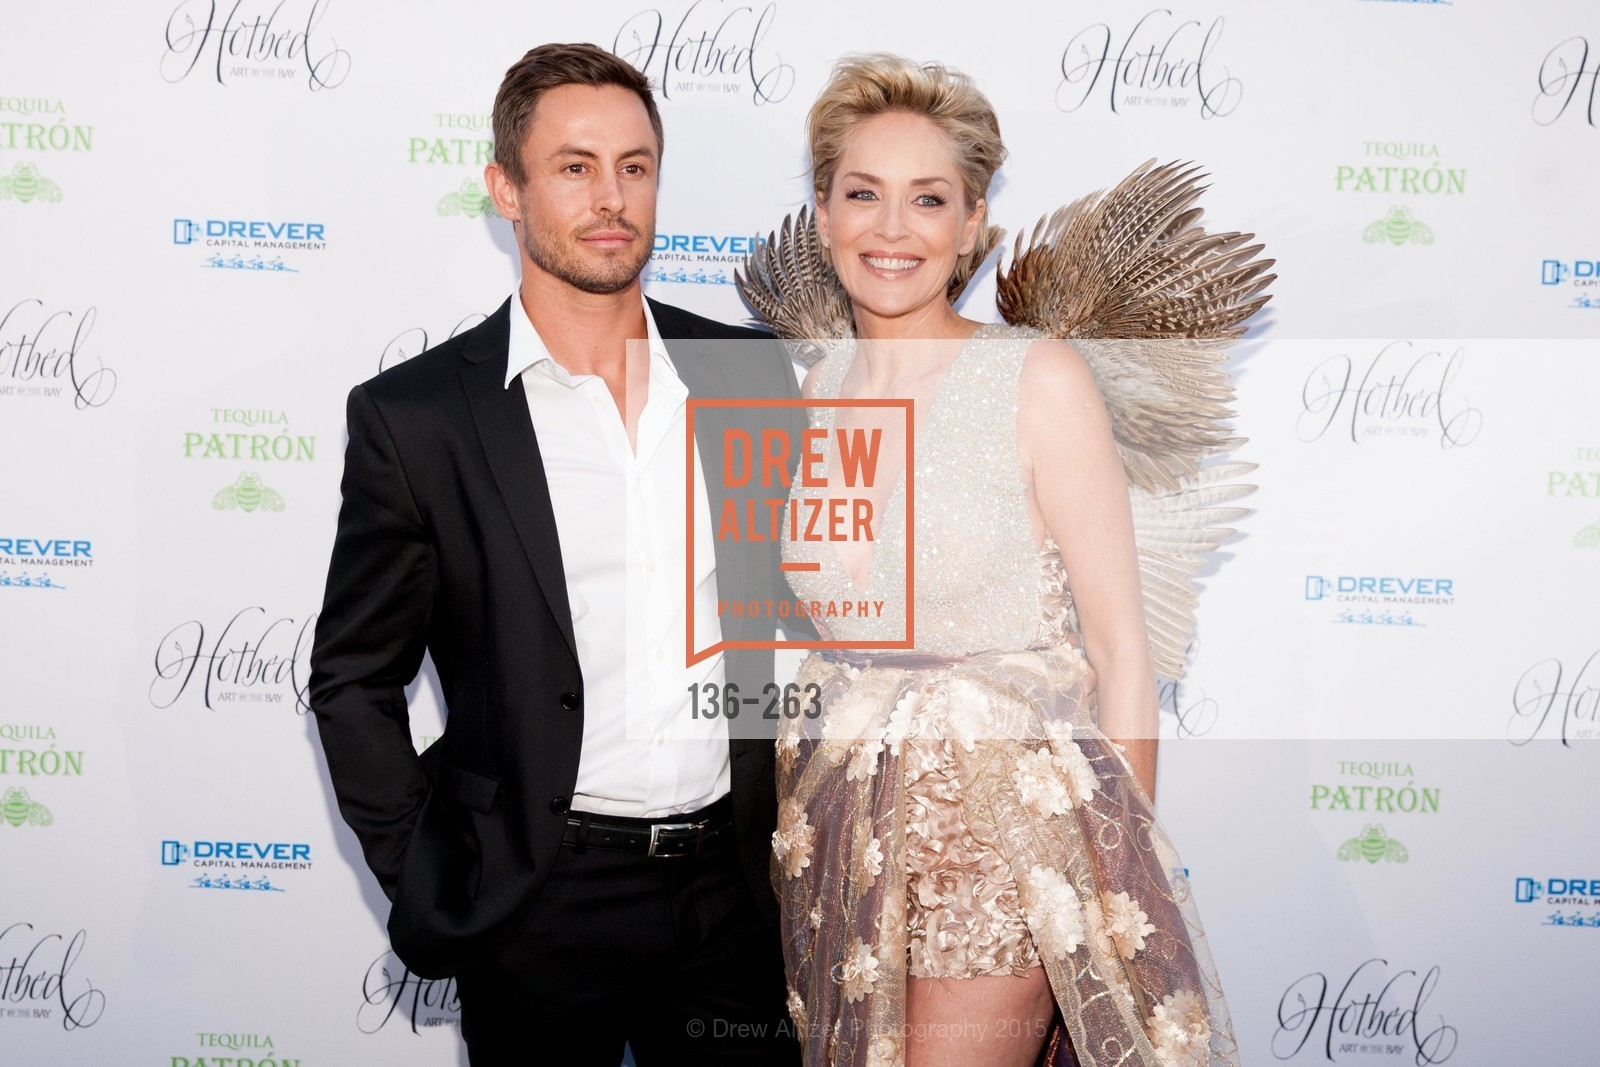 Galen Drever, Sharon Stone, Drever Family Foundation Presents The 2015 Hotbed Benefit, Private, August 22nd, 2015,Drew Altizer, Drew Altizer Photography, full-service agency, private events, San Francisco photographer, photographer california